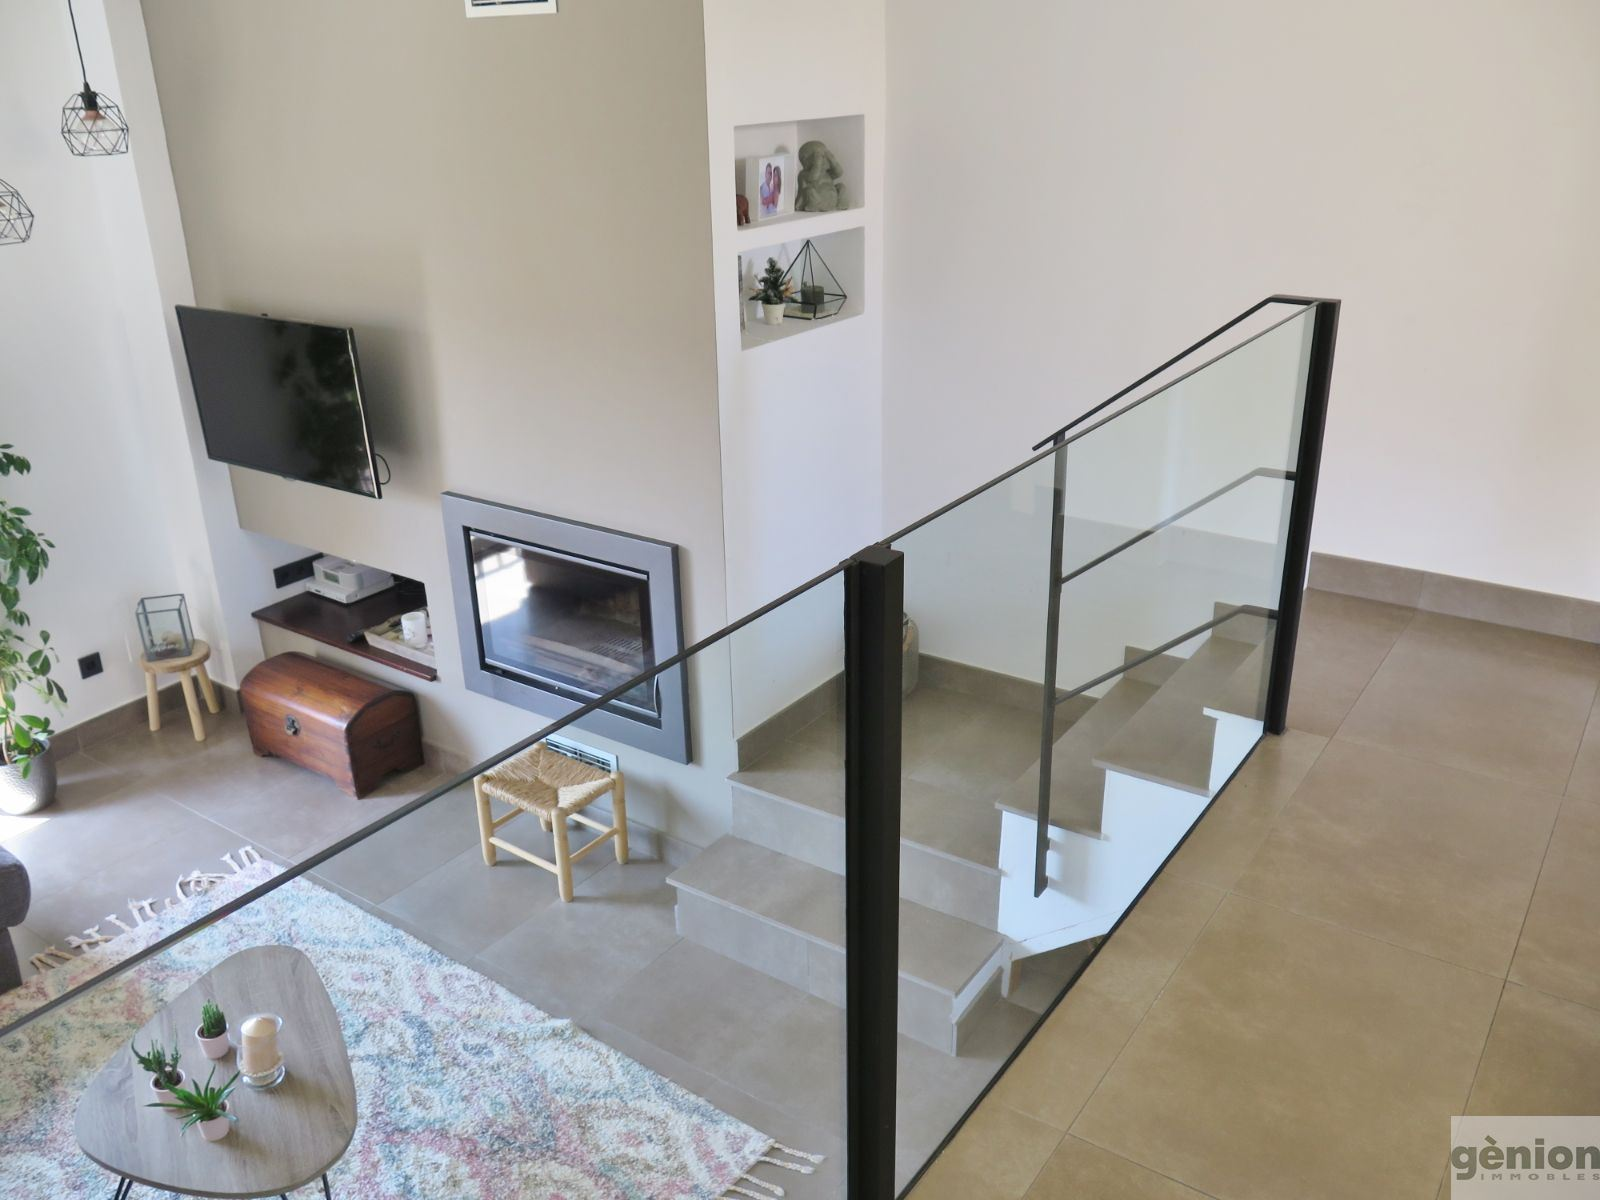 TWO-STOREY ATTIC APARTMENT IN THE CENTRE OF GIRONA. LIVING AREA OF 151.3 m² AND 18.5 m² TERRACE